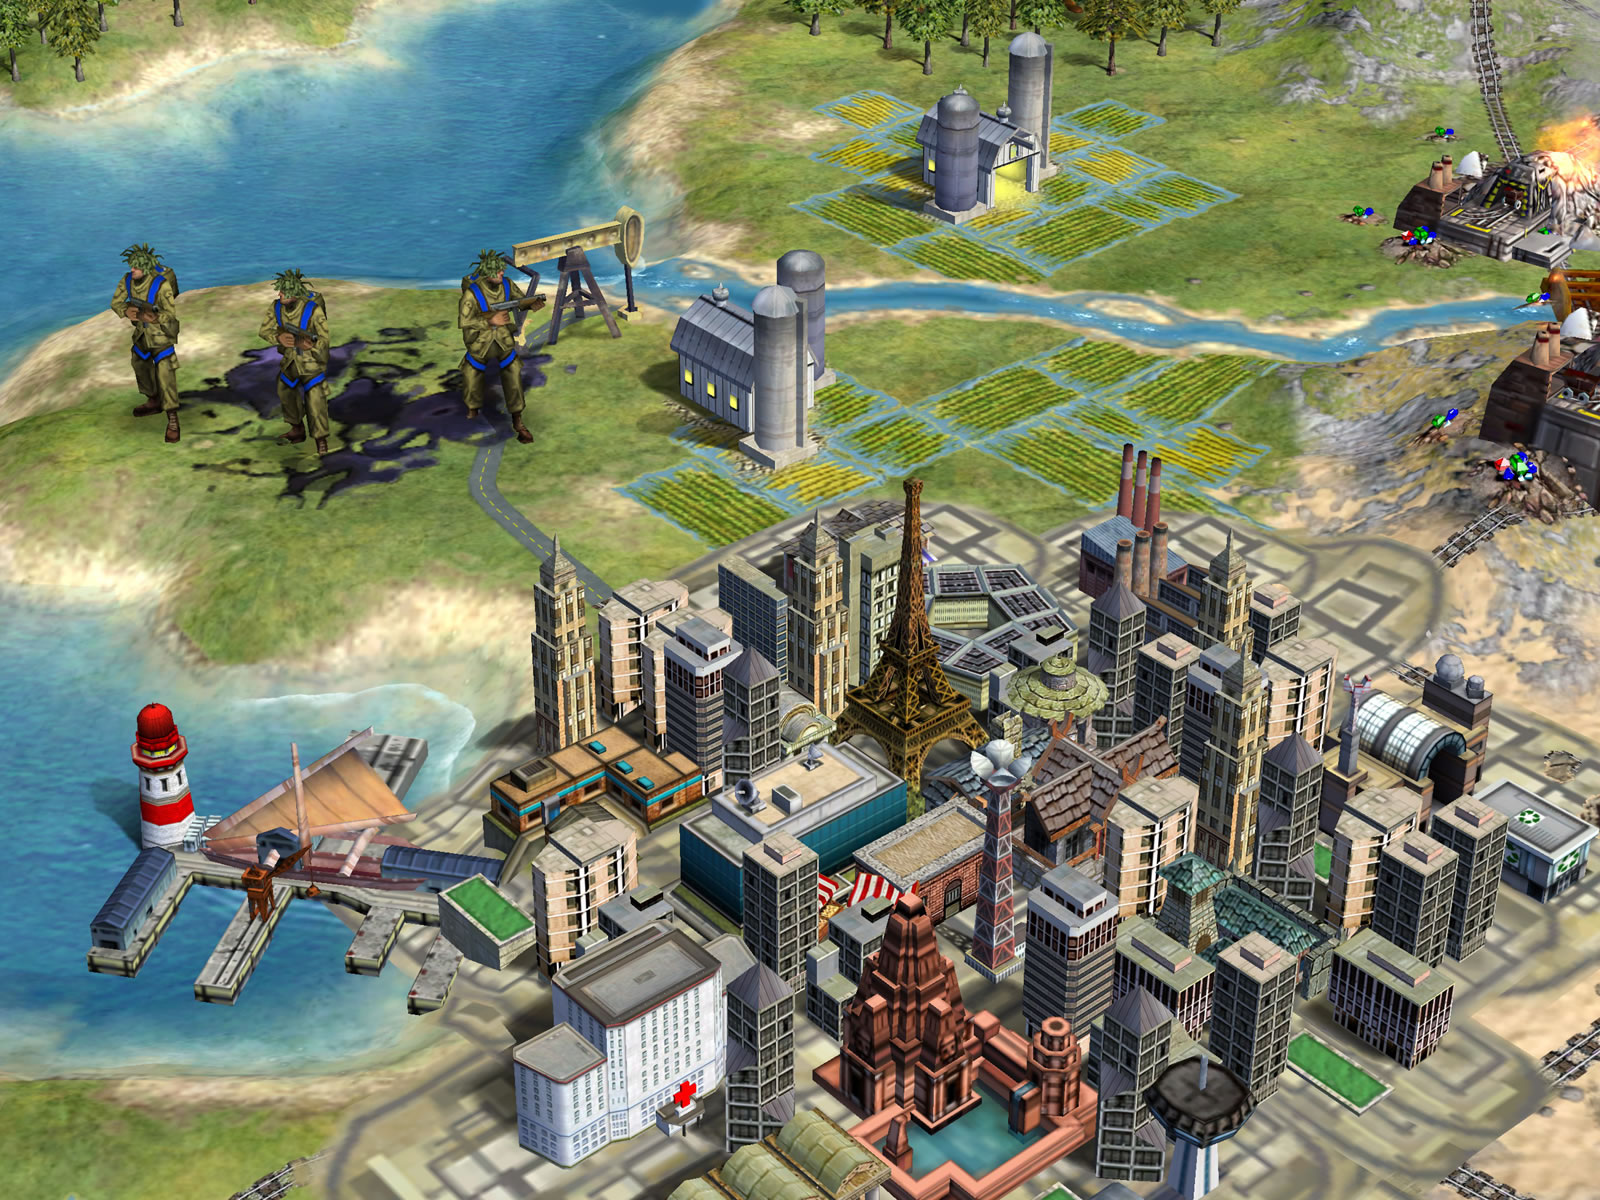 Civilization IV: Beyond the Sword screenshot